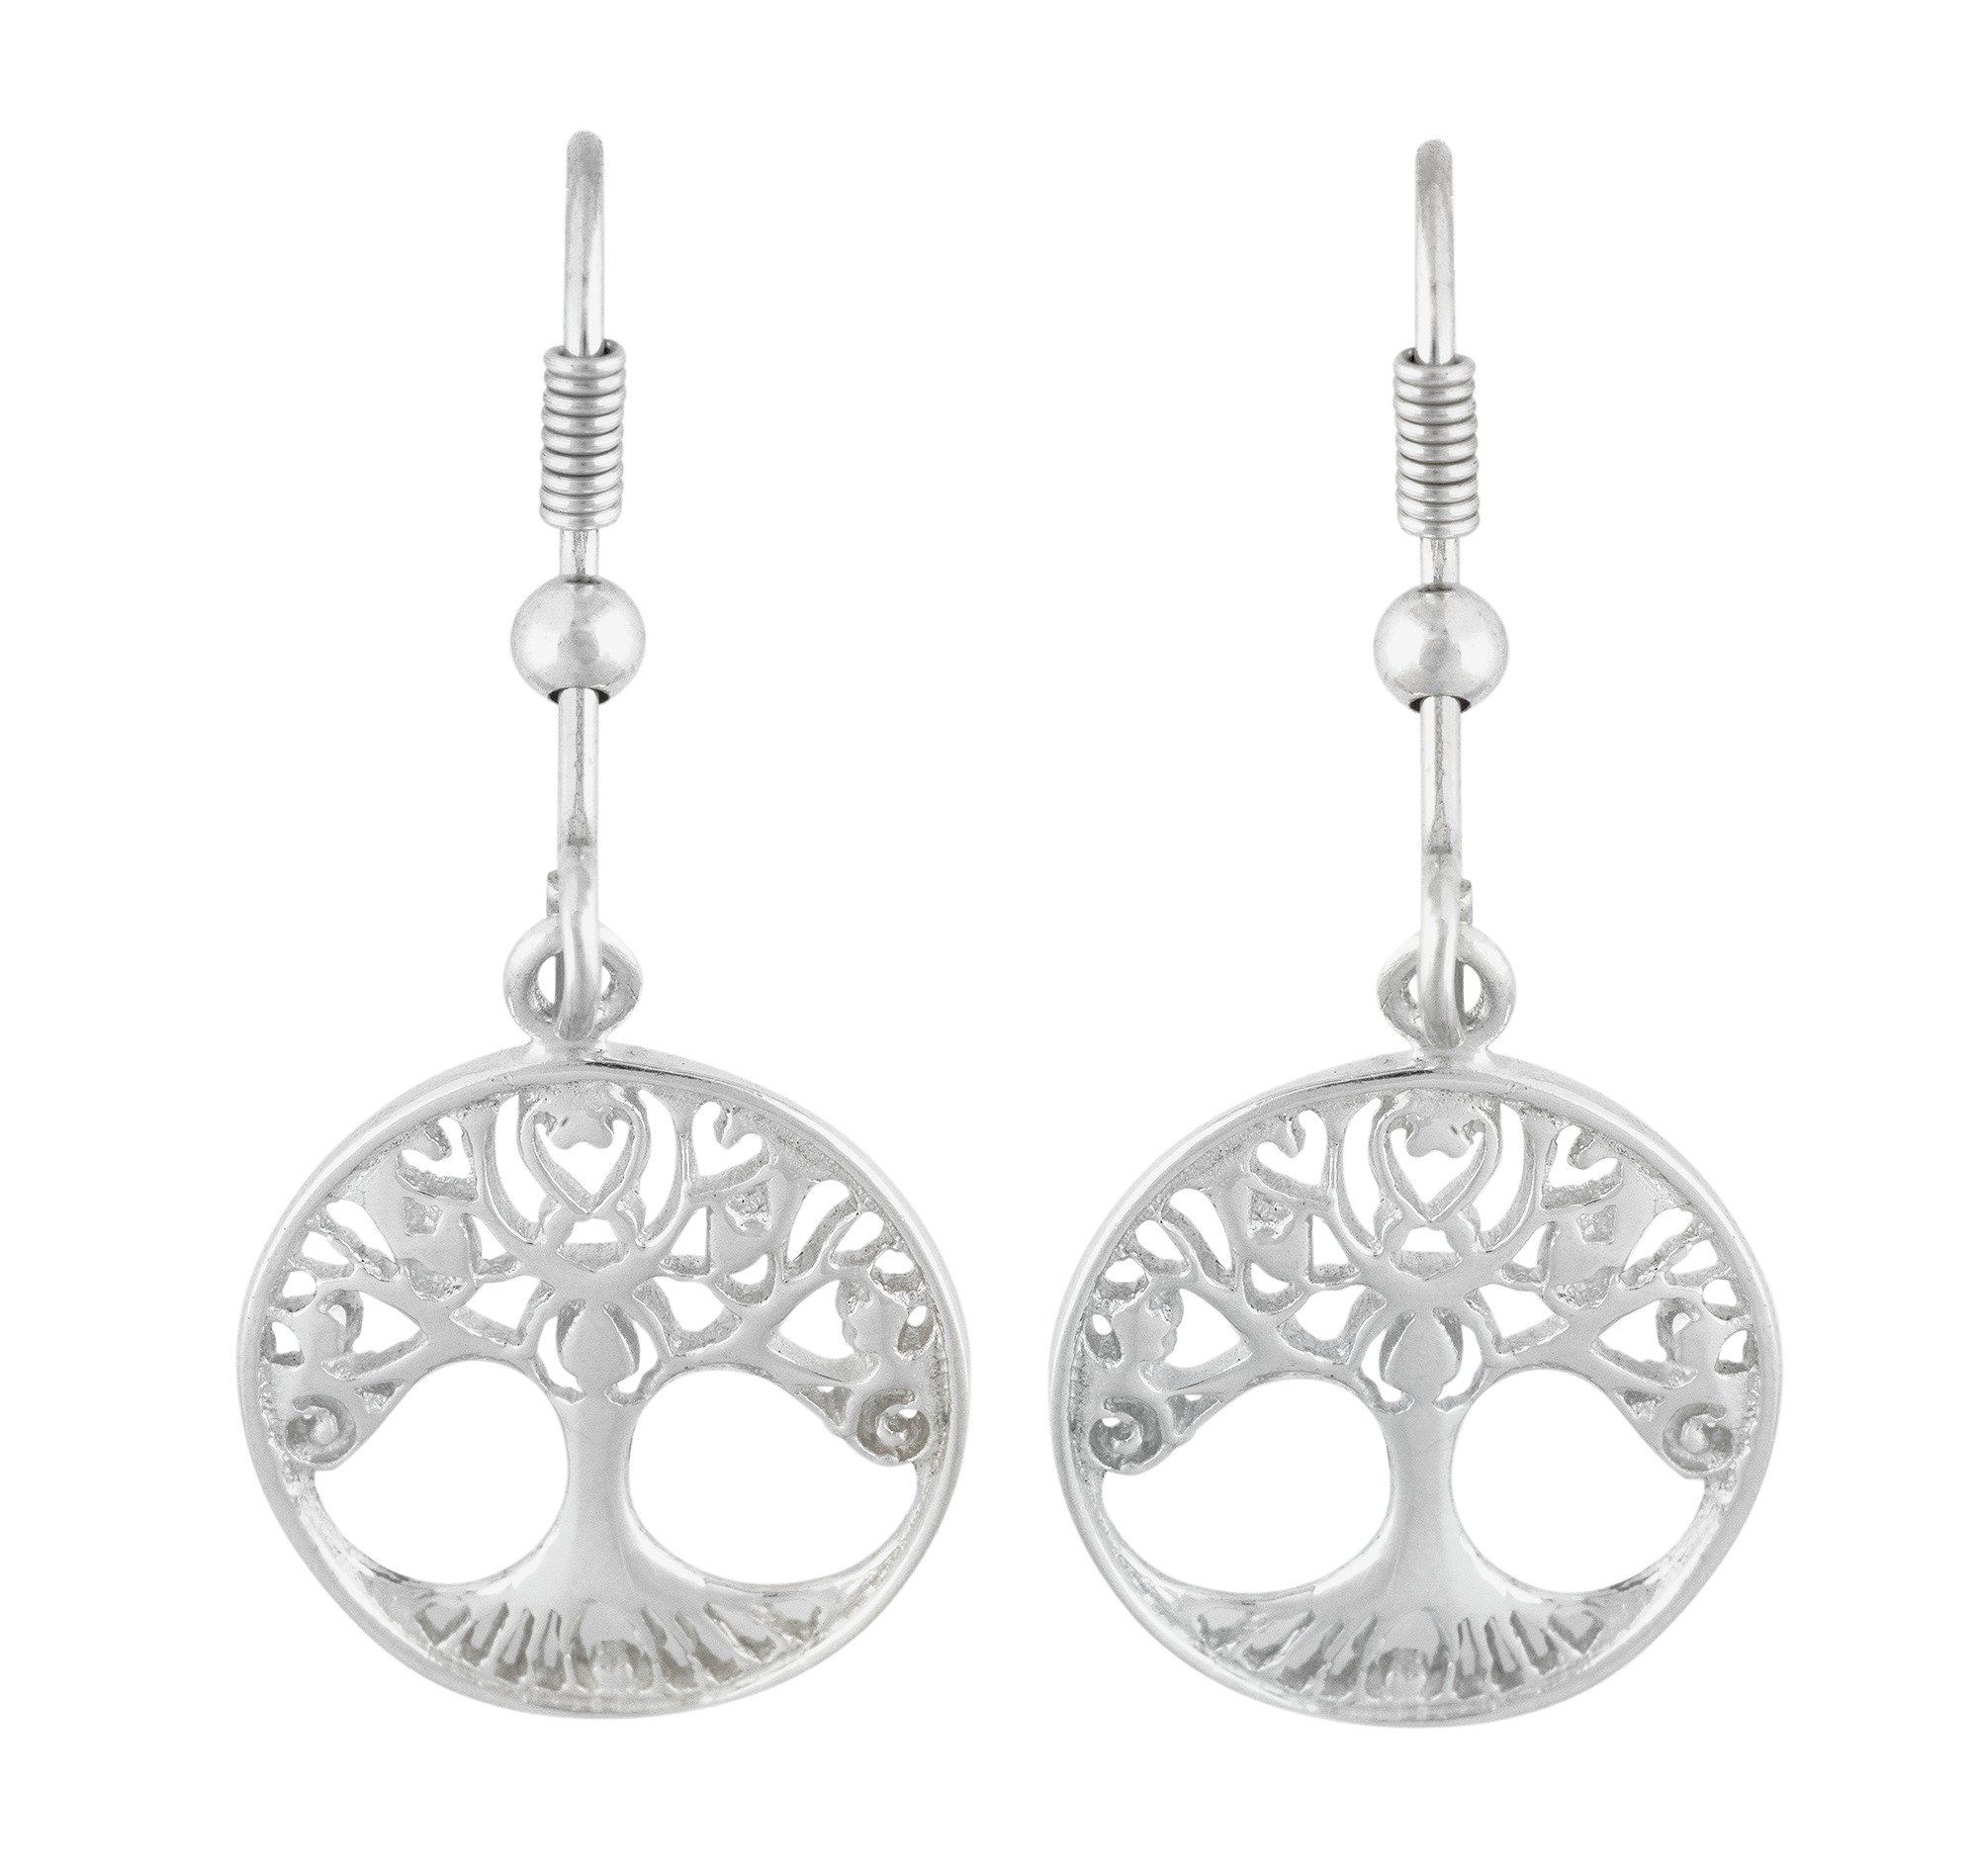 Image of Revere Sterling Silver Family Tree Drop Earrings